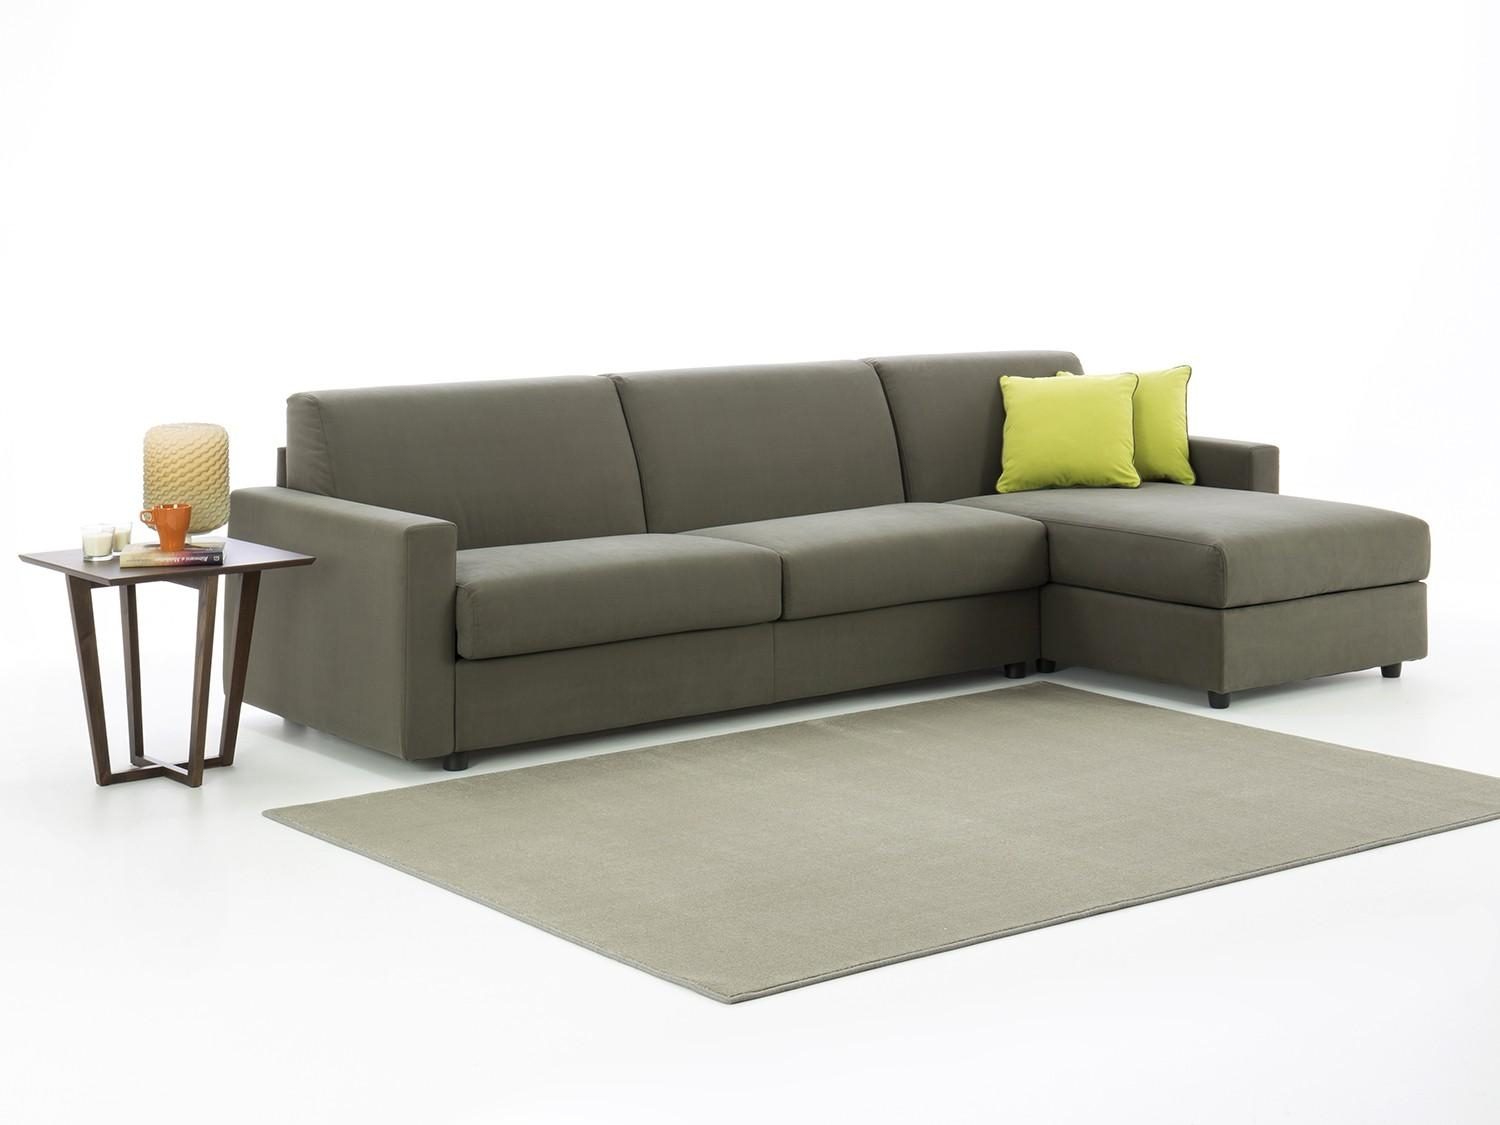 Sofa Bed Chaise With Storage | Tehranmix Decoration Intended For Sofa Beds With Storage Chaise (Image 11 of 20)